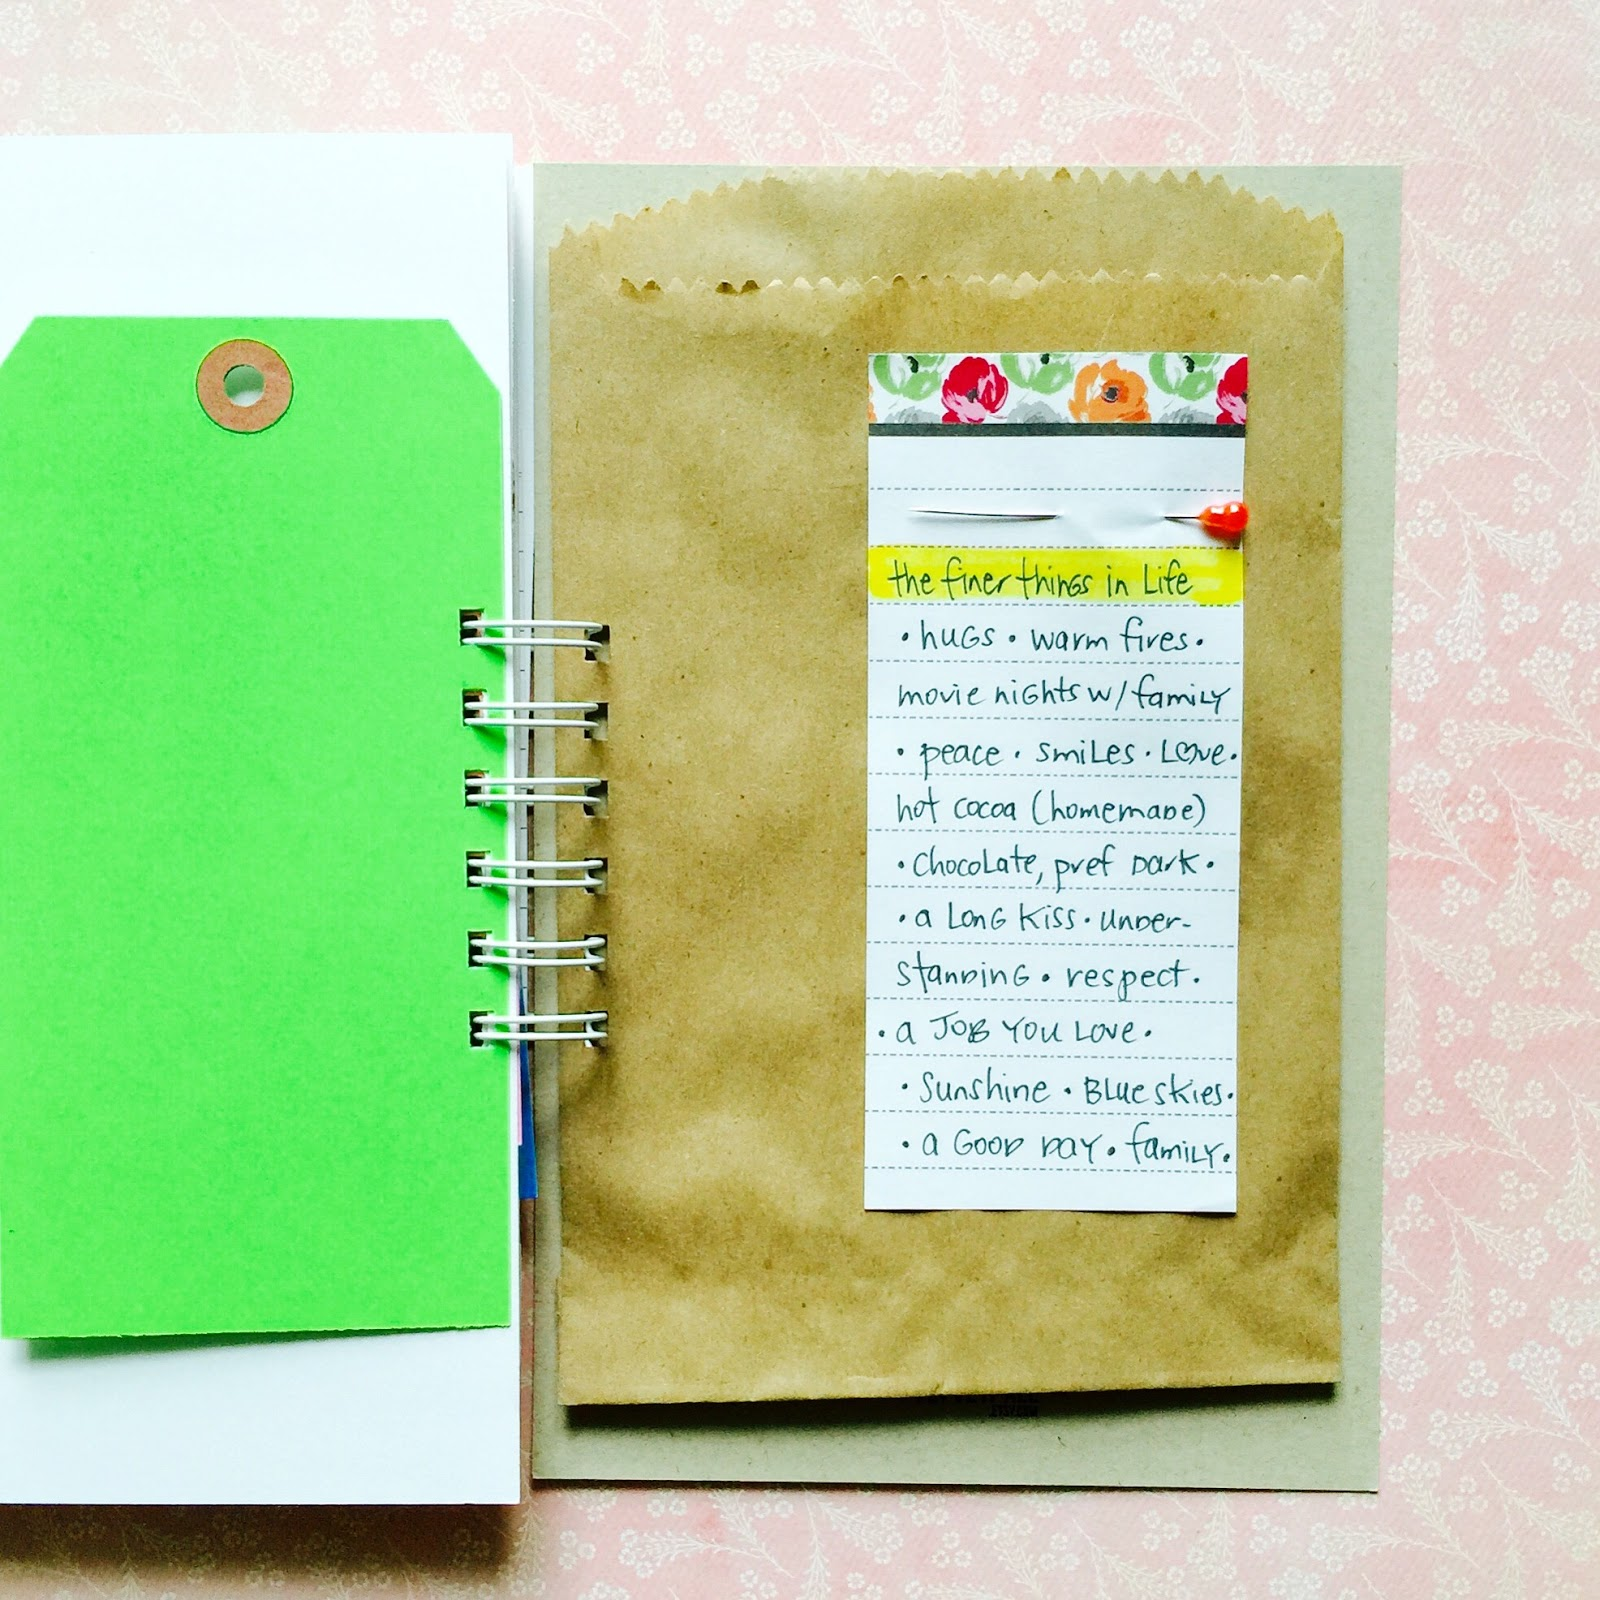 #scrapbook #lists #listersgottalist #mini album #mini #book #challenge